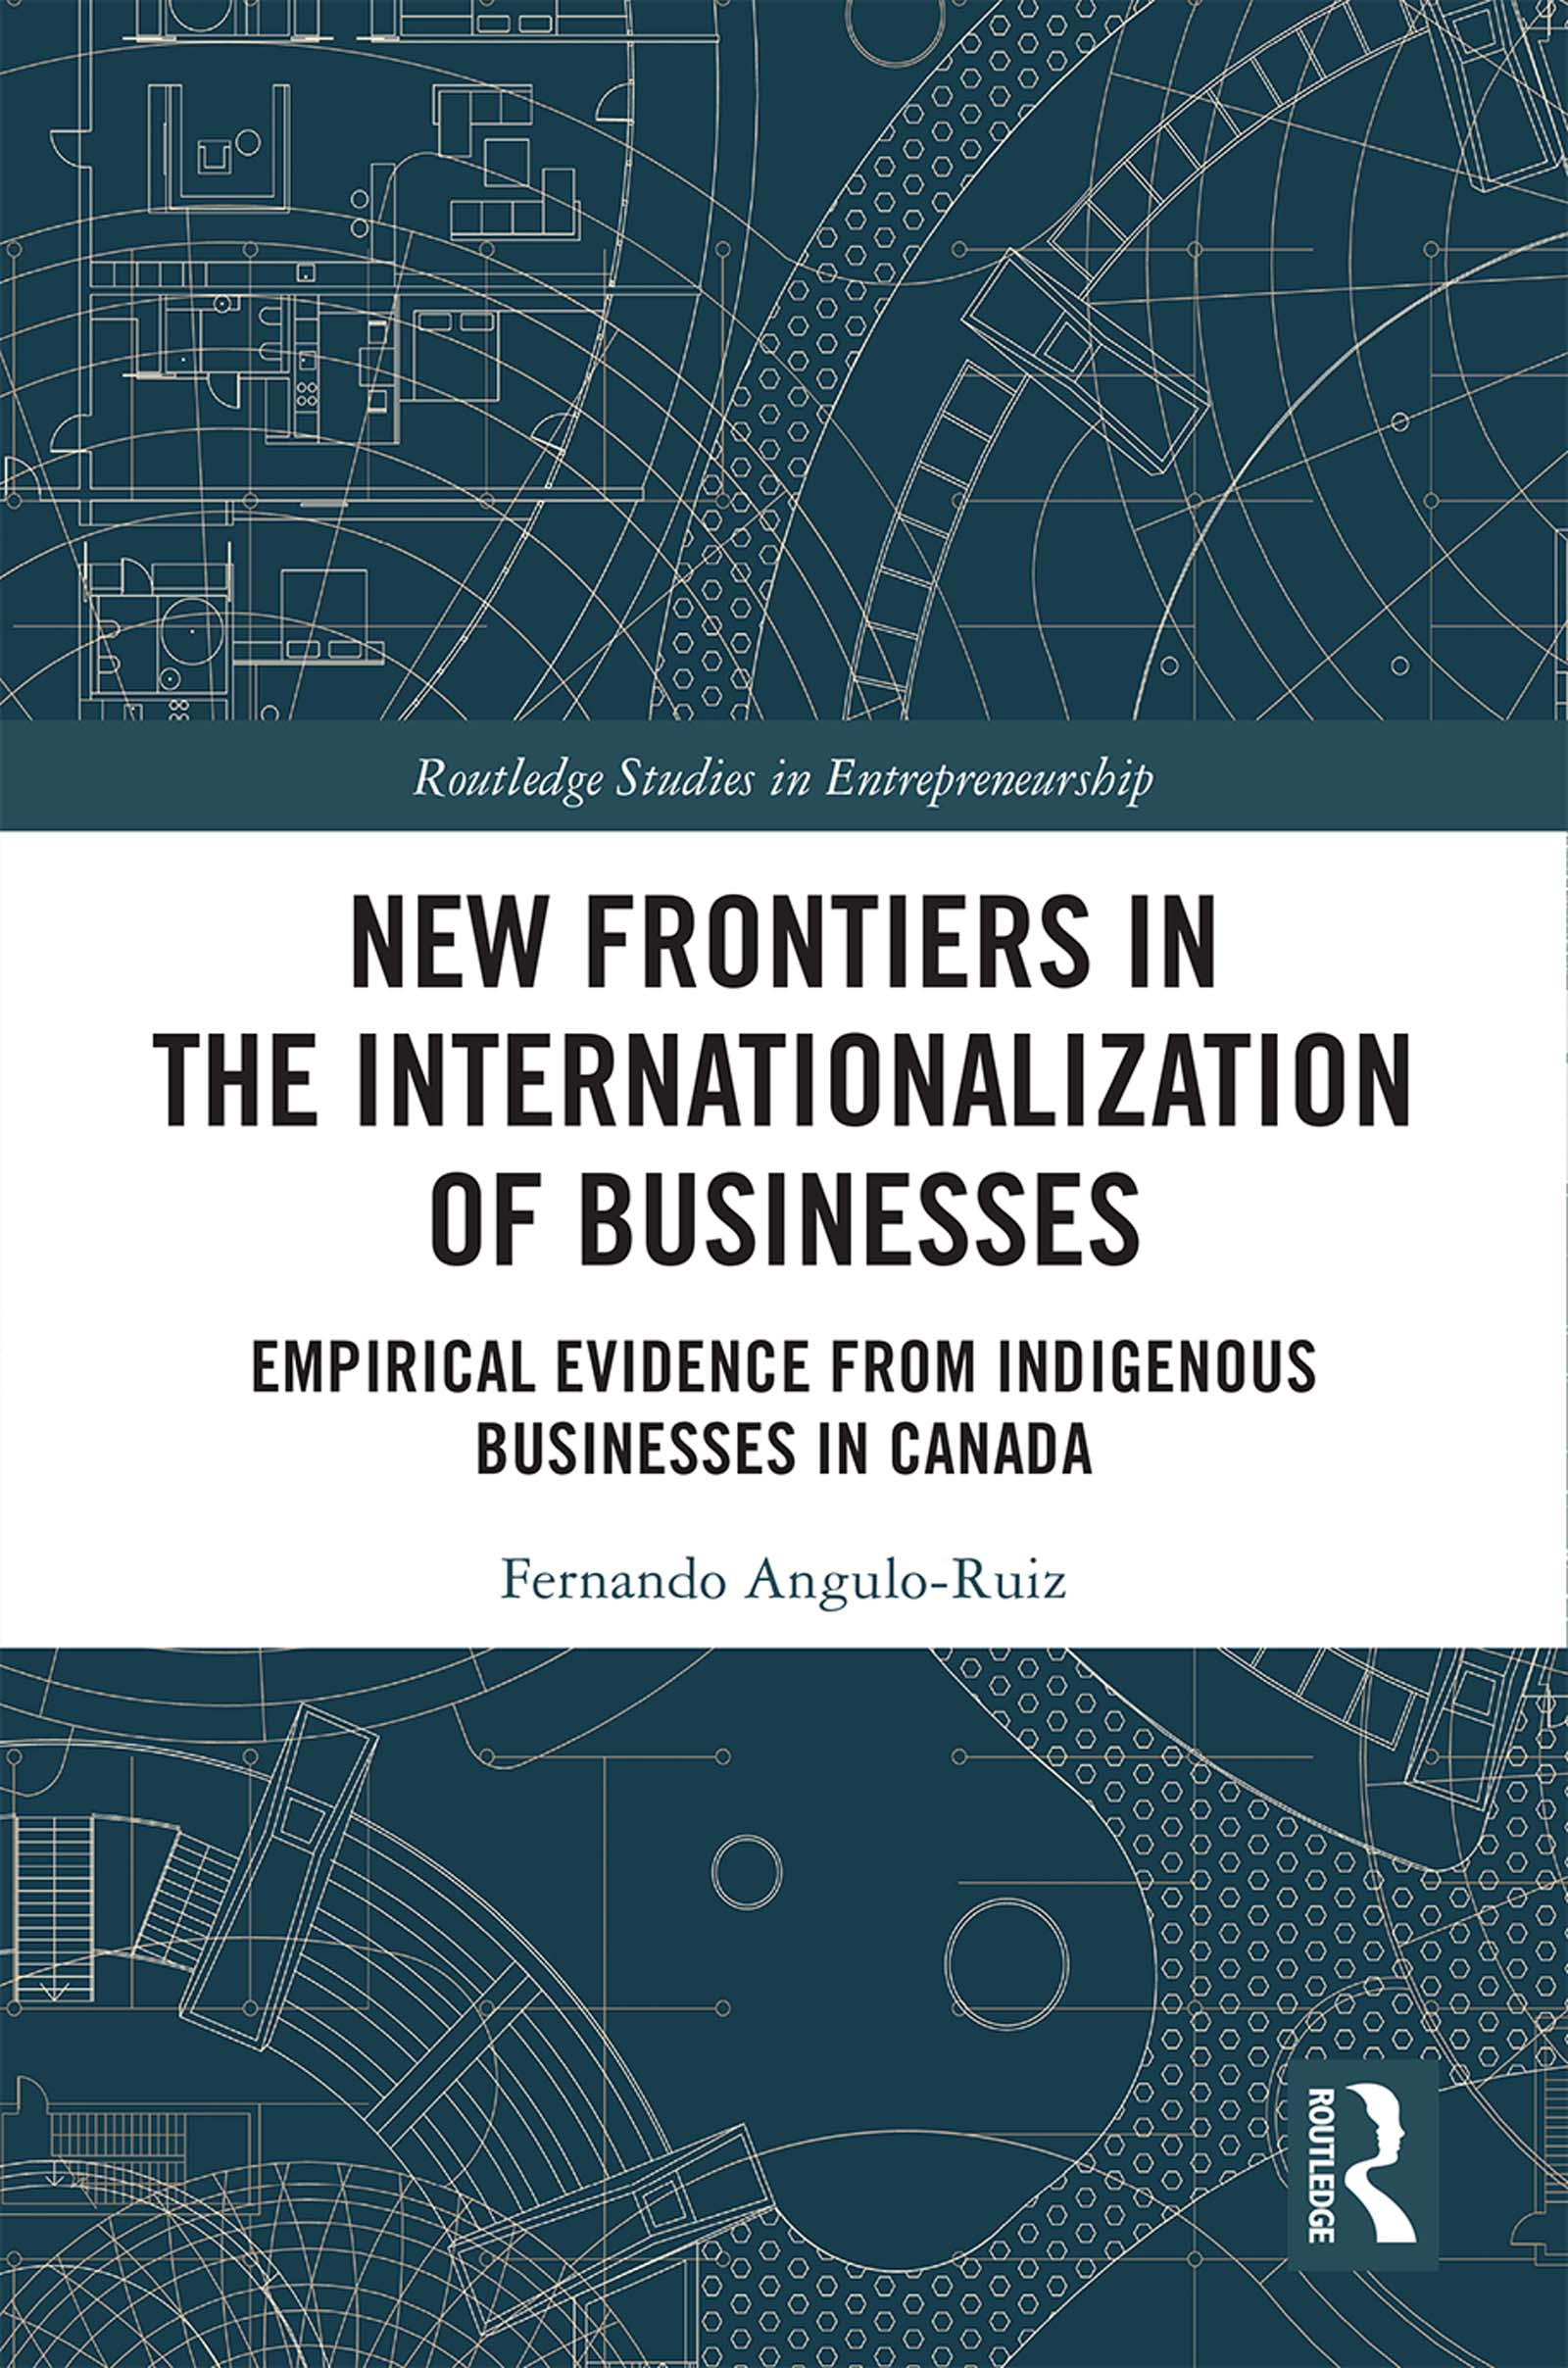 New Frontiers in the Internationalization of Businesses: Empirical Evidence from Indigenous Businesses in Canada book cover